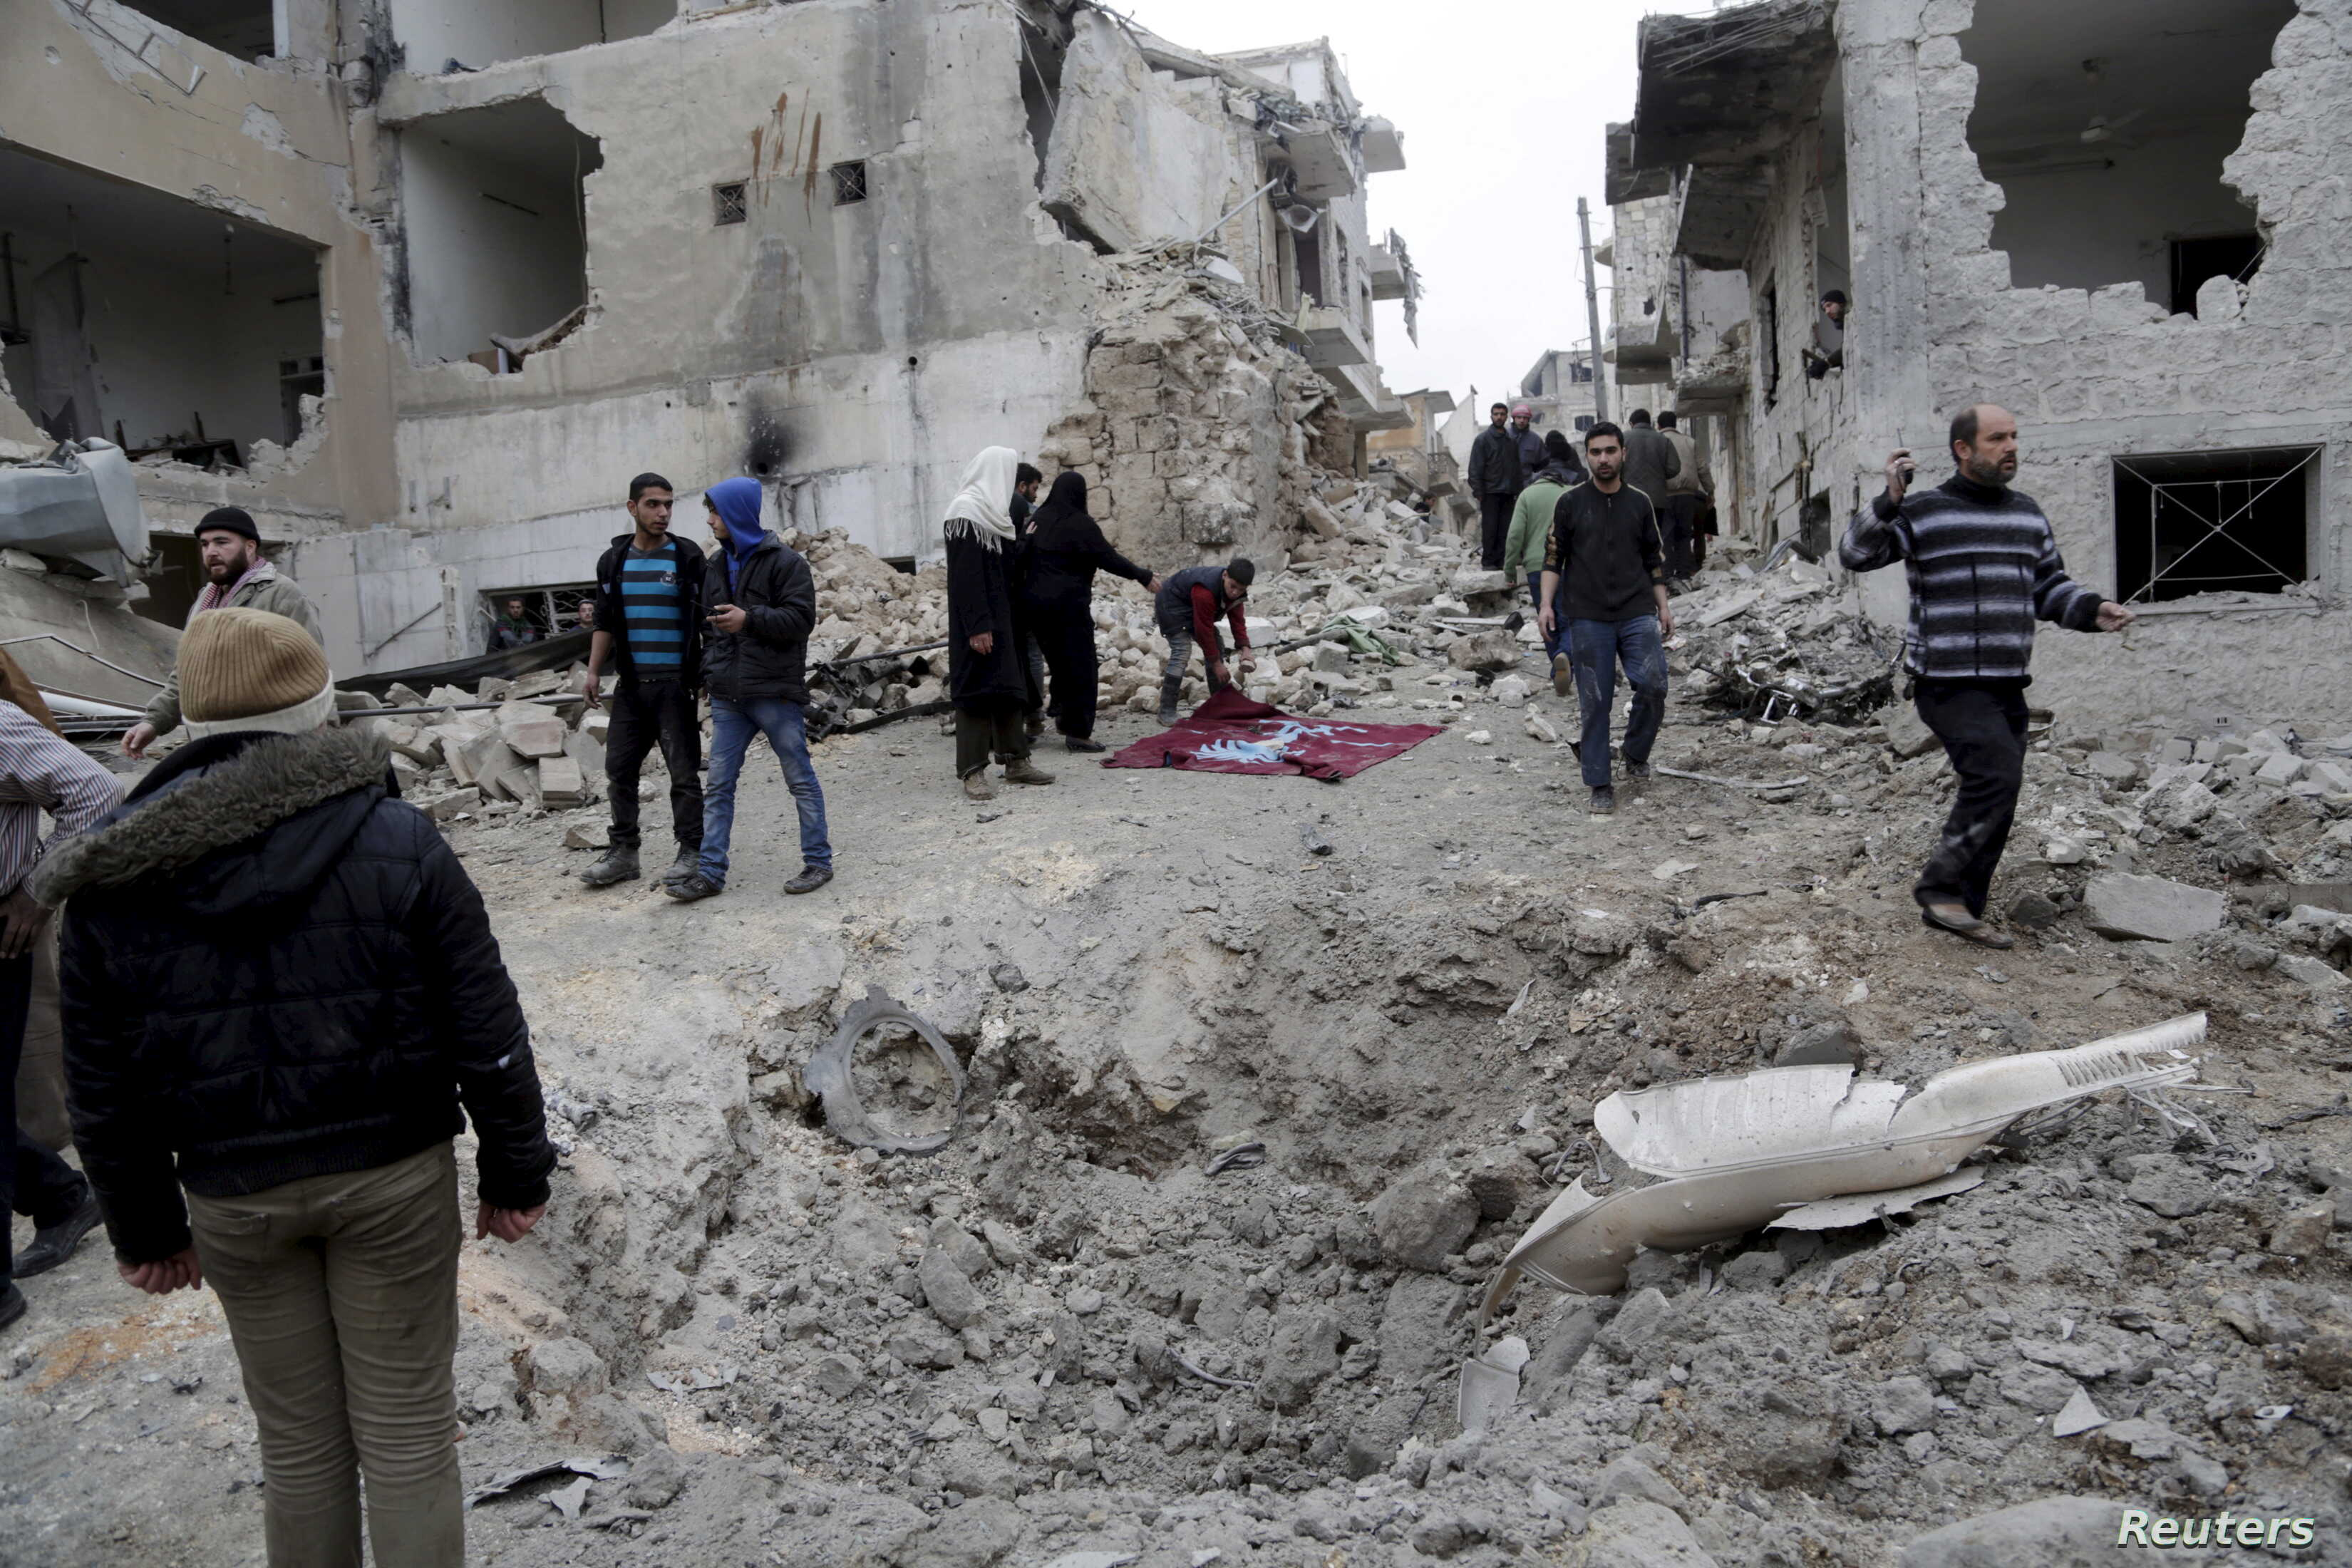 FILE - Residents inspect a crater at a site hit by what activists said were three consecutive air strikes carried out by the Russian air force, the last which hit an ambulance, in the rebel-controlled area of Maaret al-Numan town in Idlib province, S...